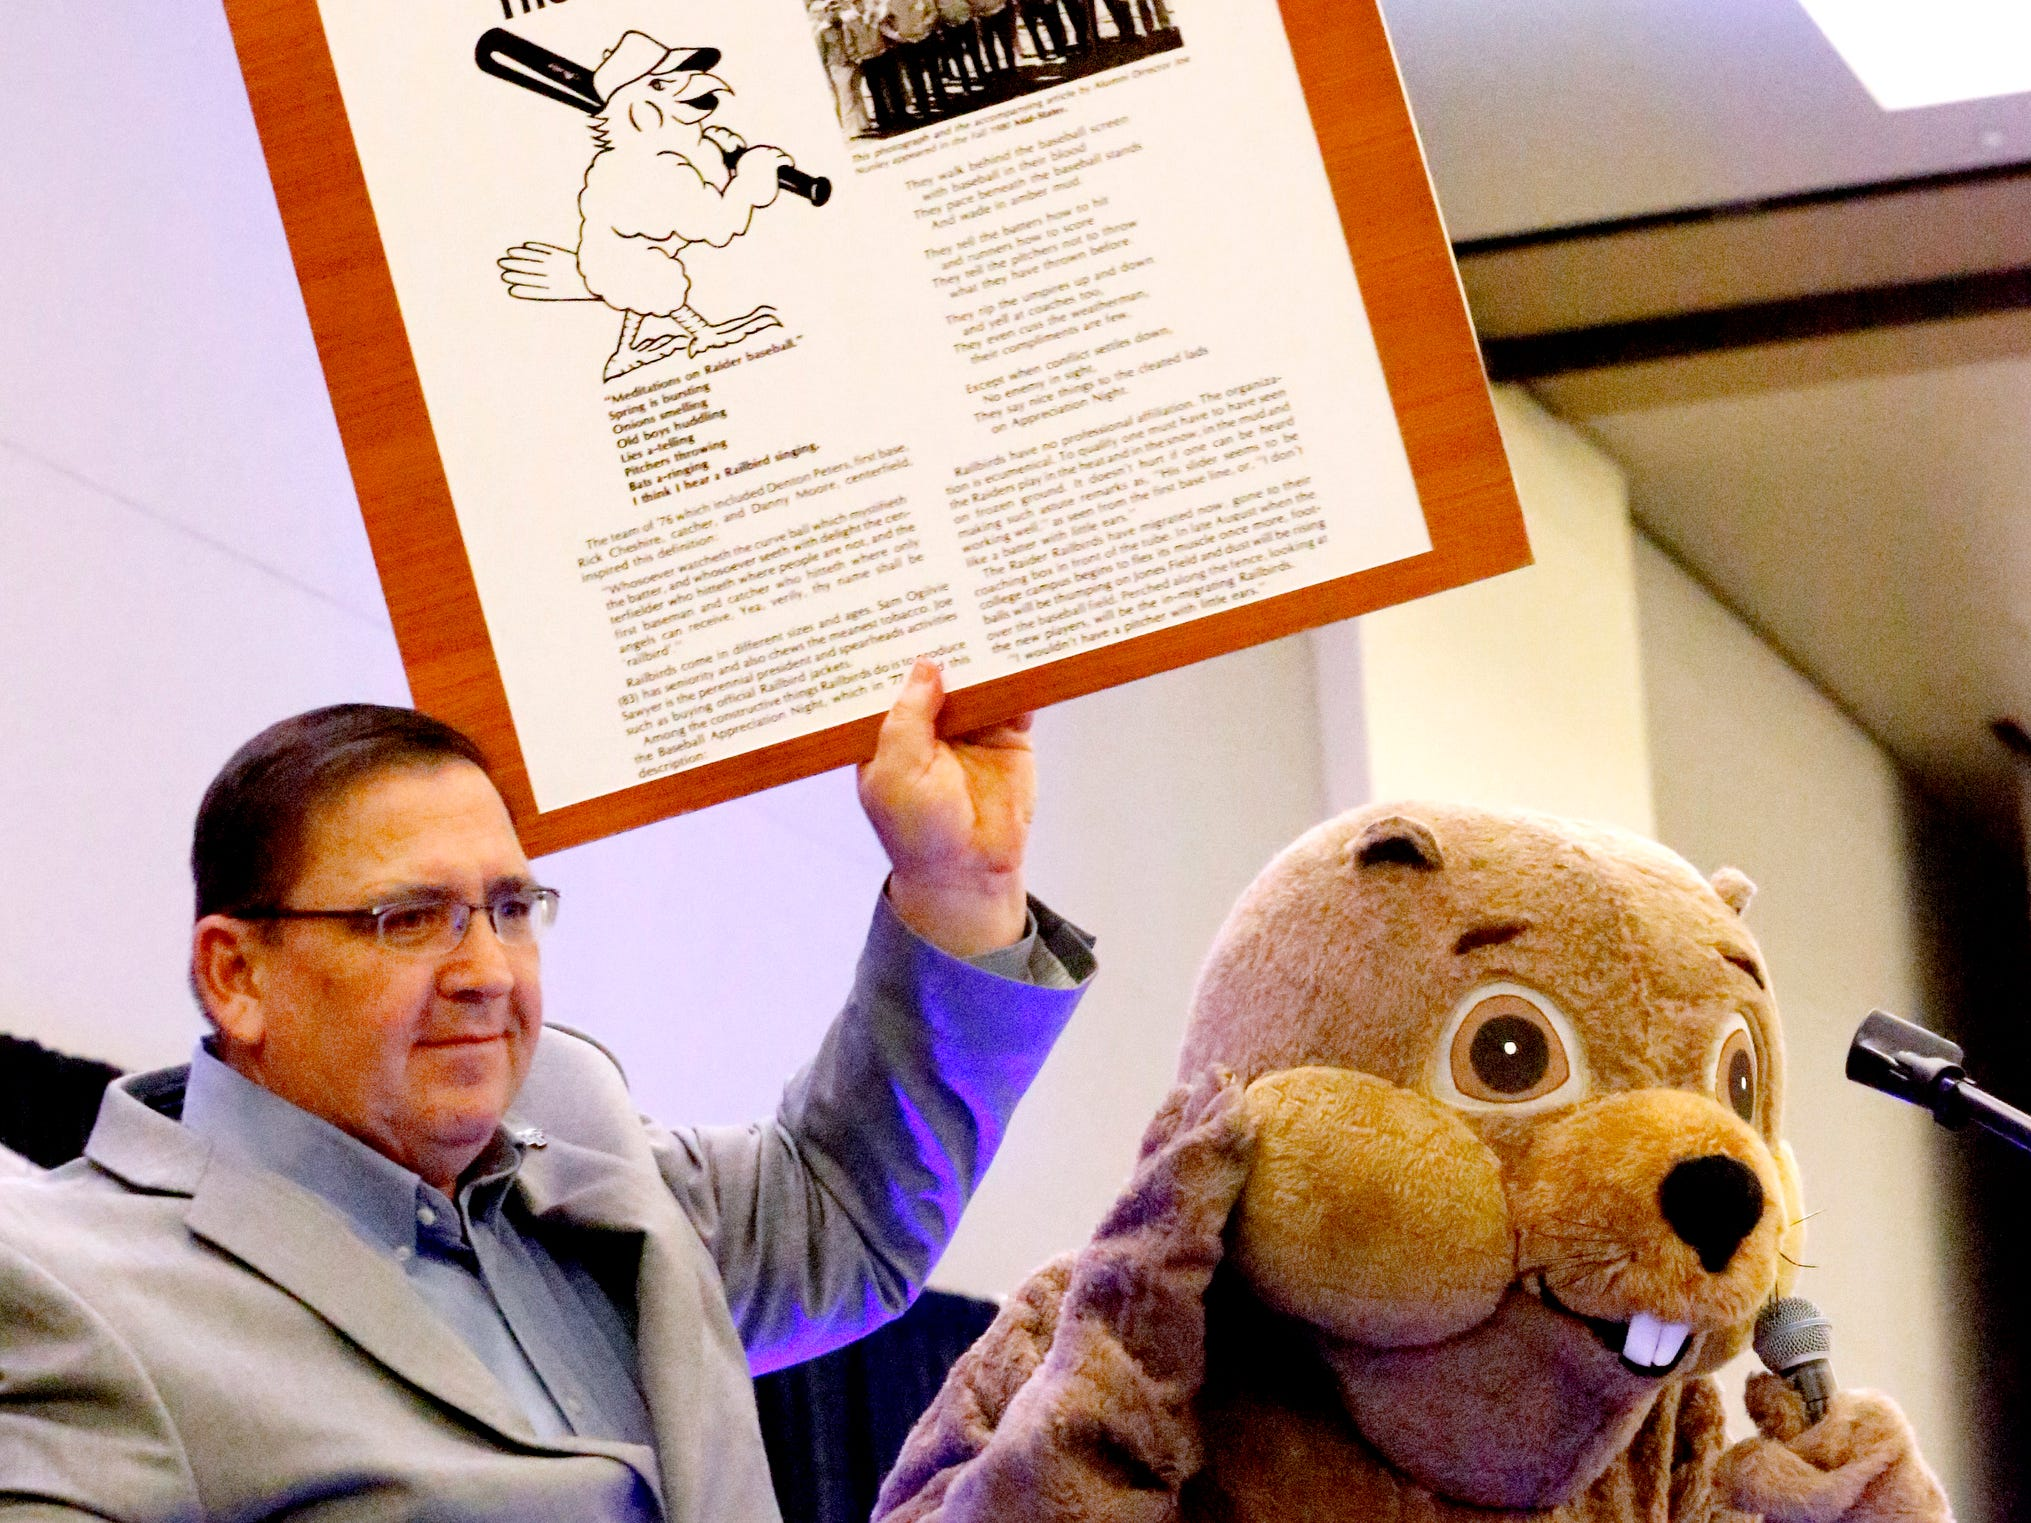 MTSU's new baseball coach Jim Toman holds up the history of the Railbirds on Friday, Feb. 1, 2019, as Raider 3 tells the history of the Groundhog Luncheon and the Railbirds during the MTSU baseball kickoff. It was revealed later that former MTSU baseball Coach Steve Peterson was in the Raider 3 costume.